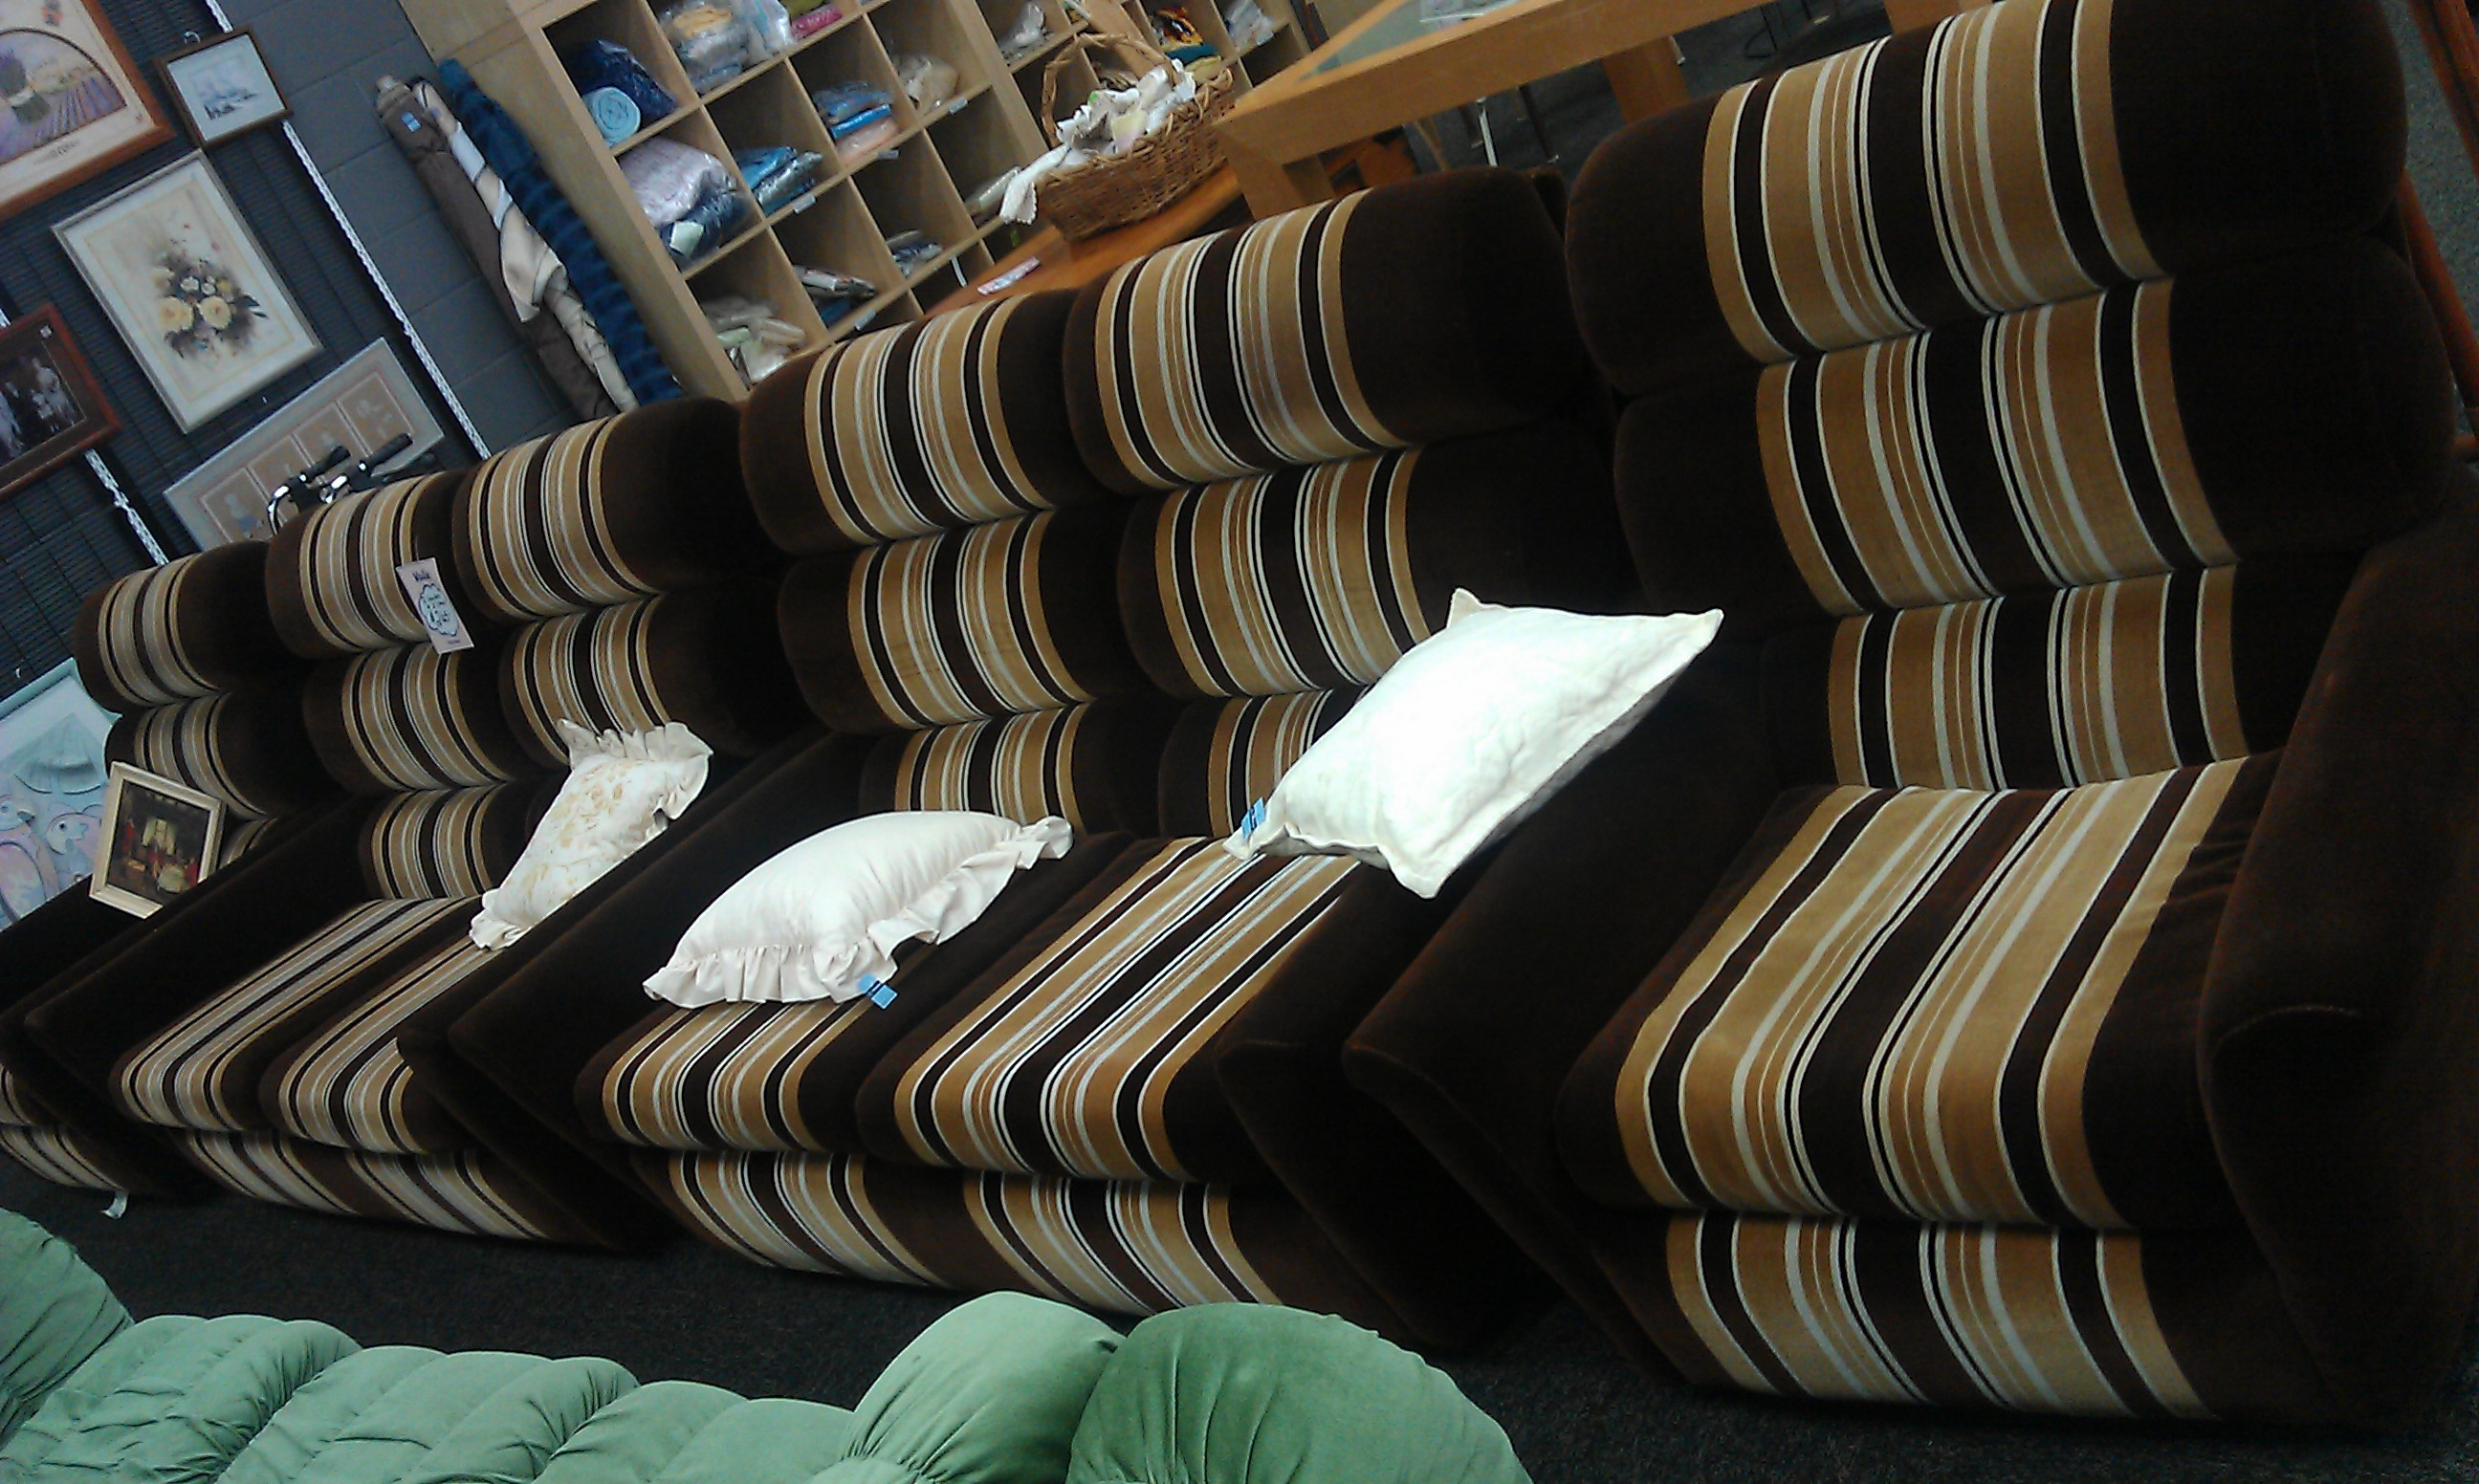 Vinnies Shops provide furniture, clothing and household goods to families and people who are in